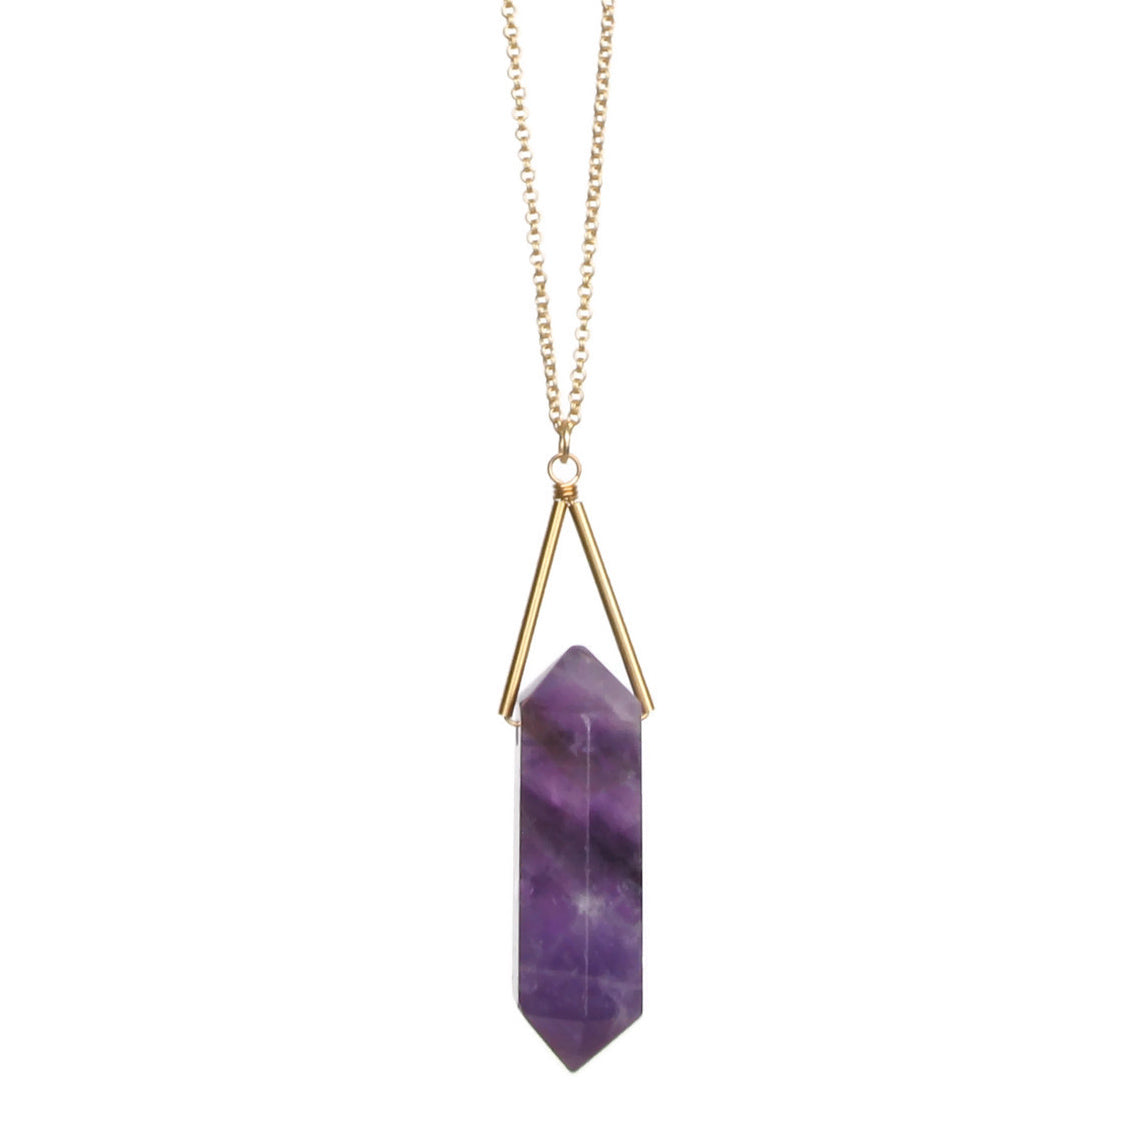 Toro Necklace - Crystal Amethyst